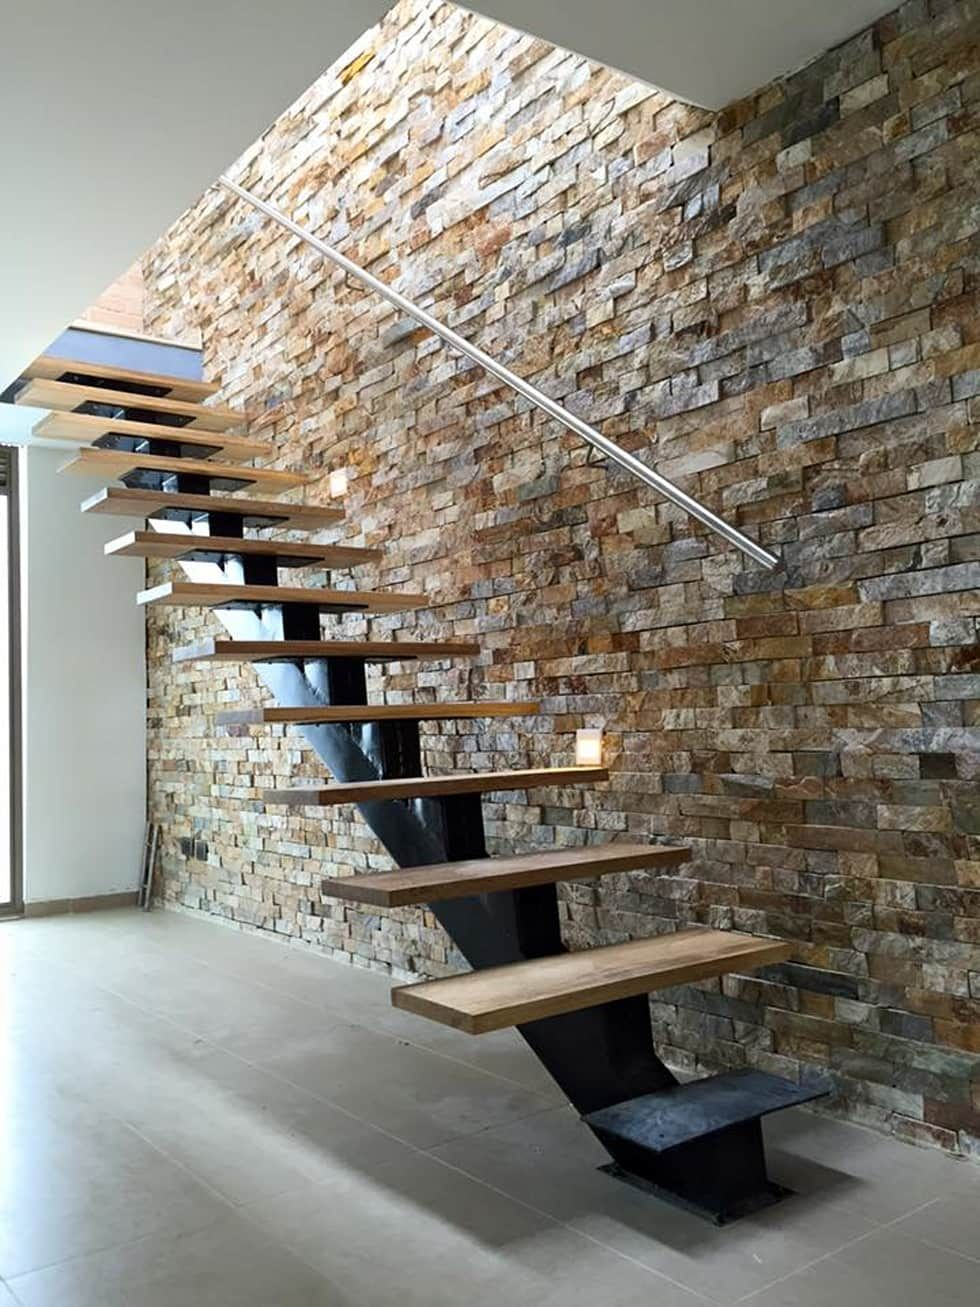 Im genes de decoraci n y dise o de interiores pinterest for Tipos de escaleras interiores